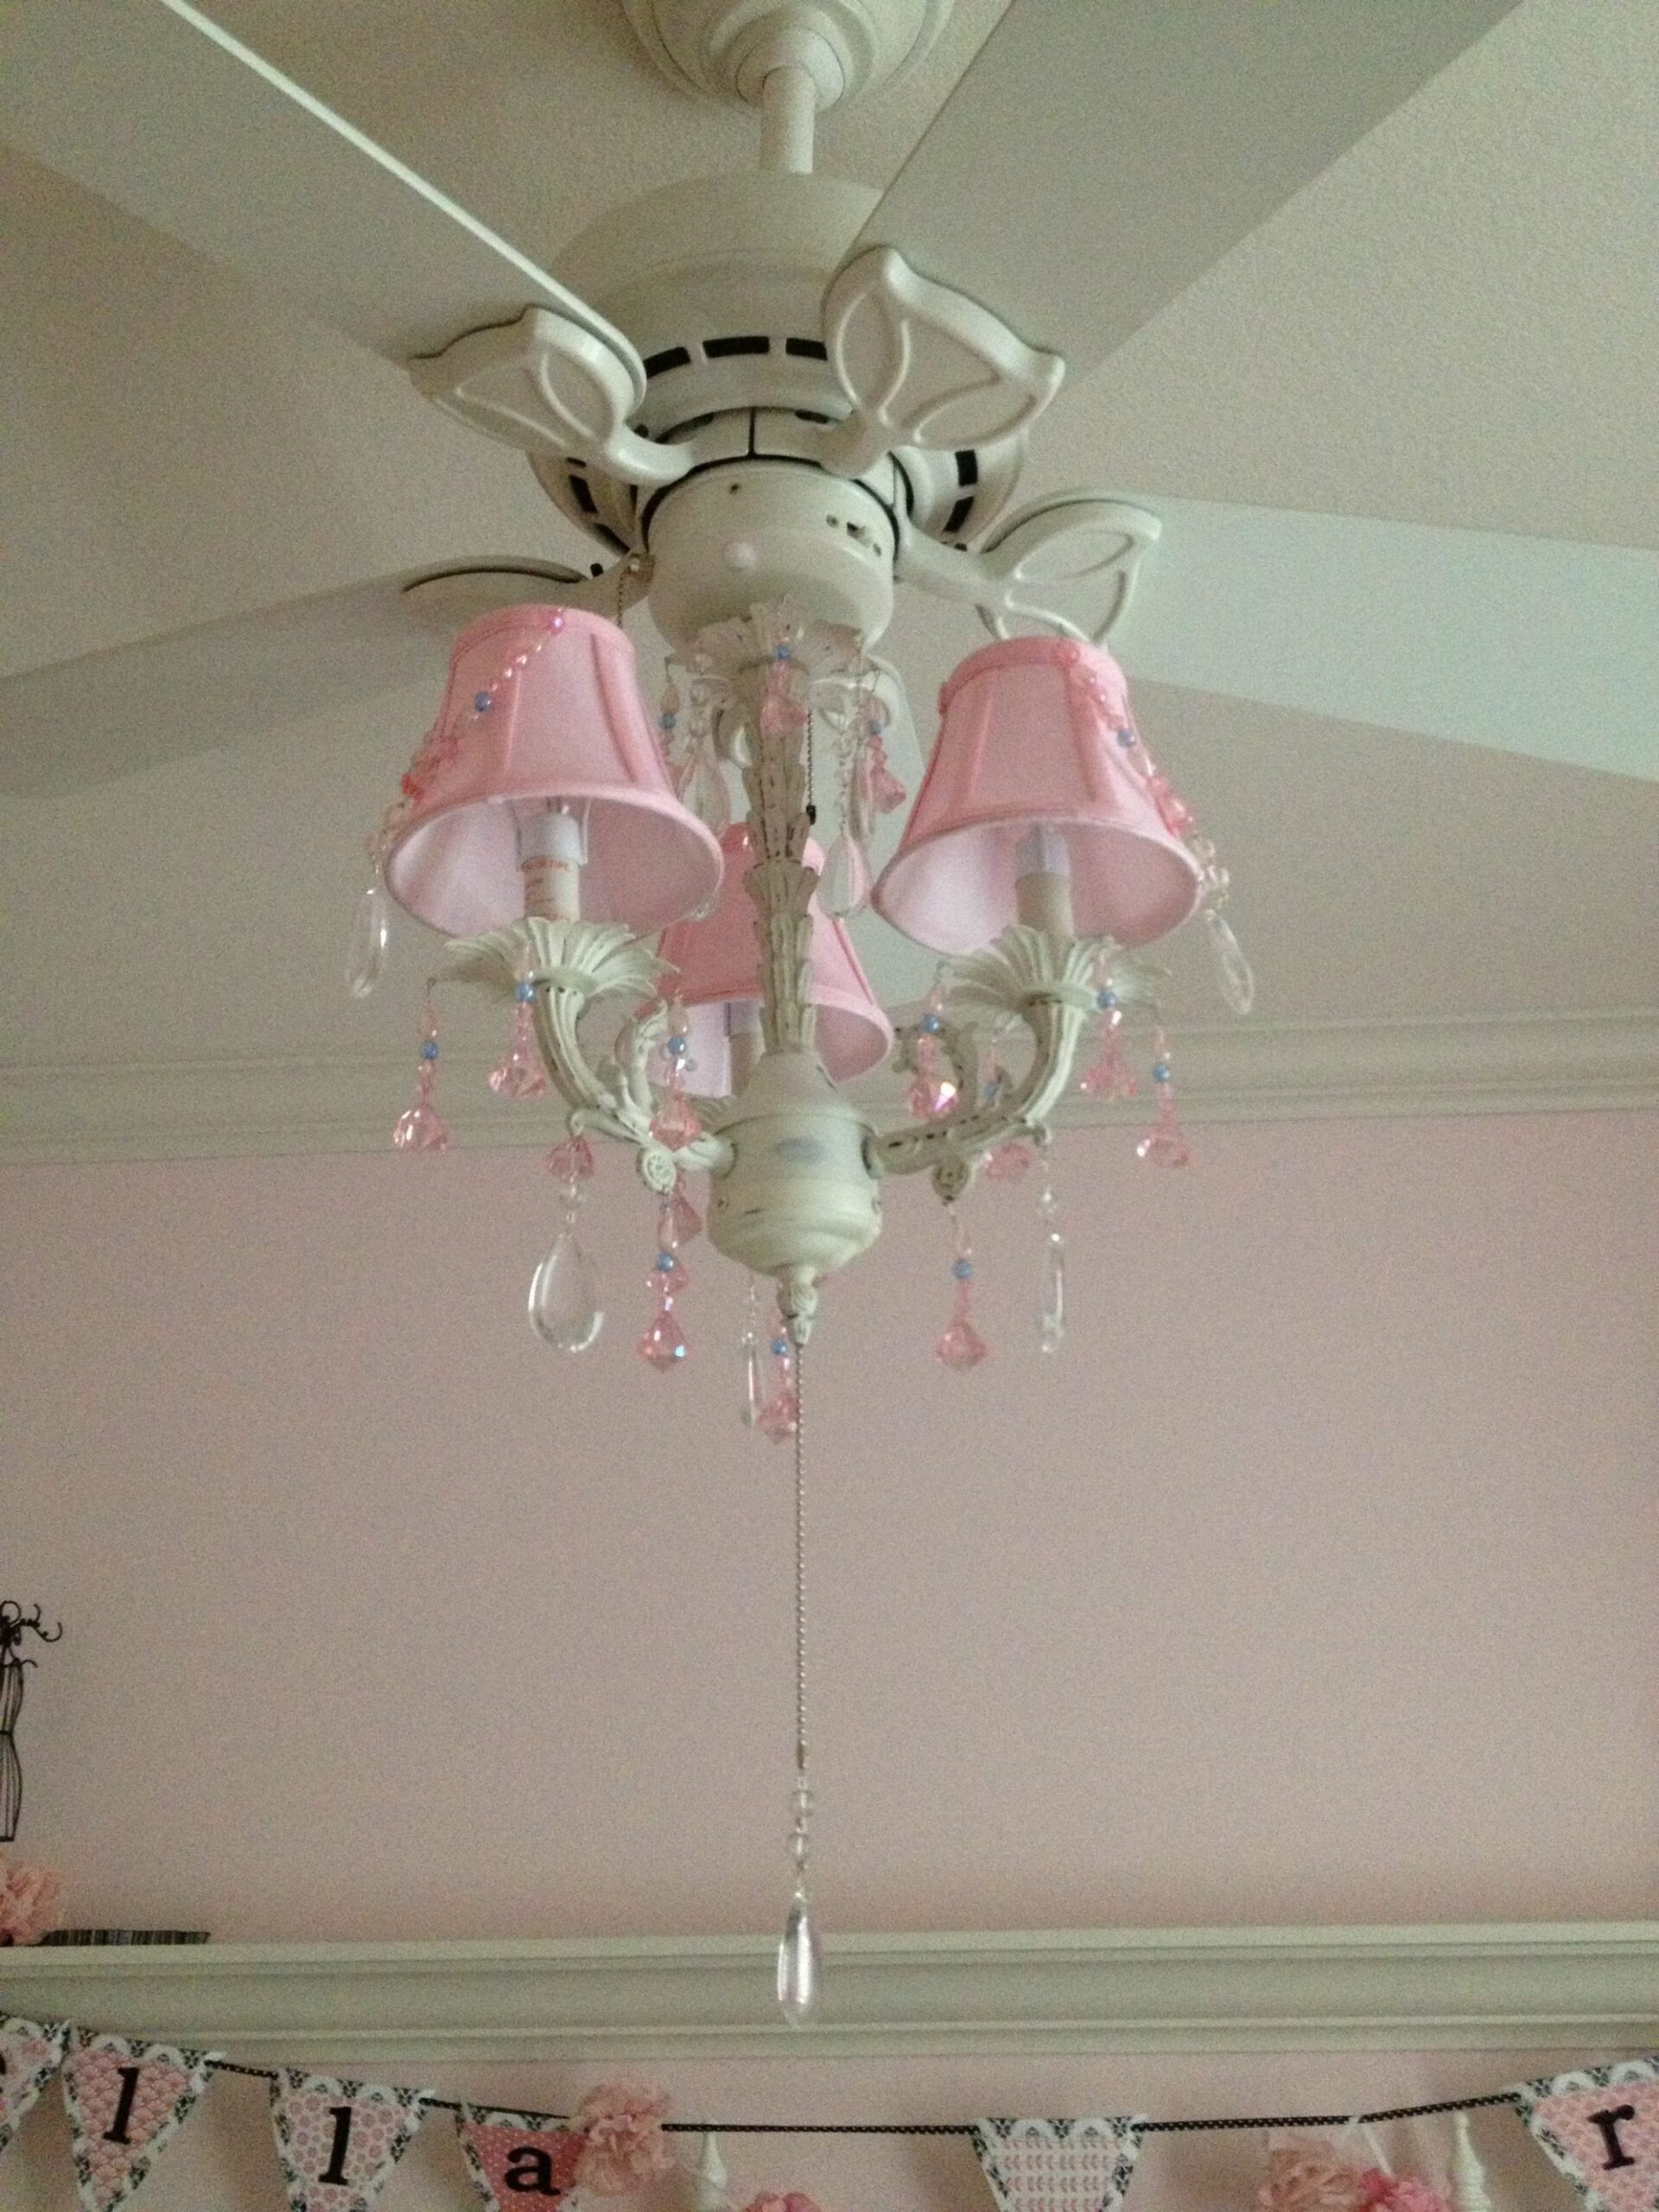 Pink Chandelier on the fan (With images) | Girls ceiling fan